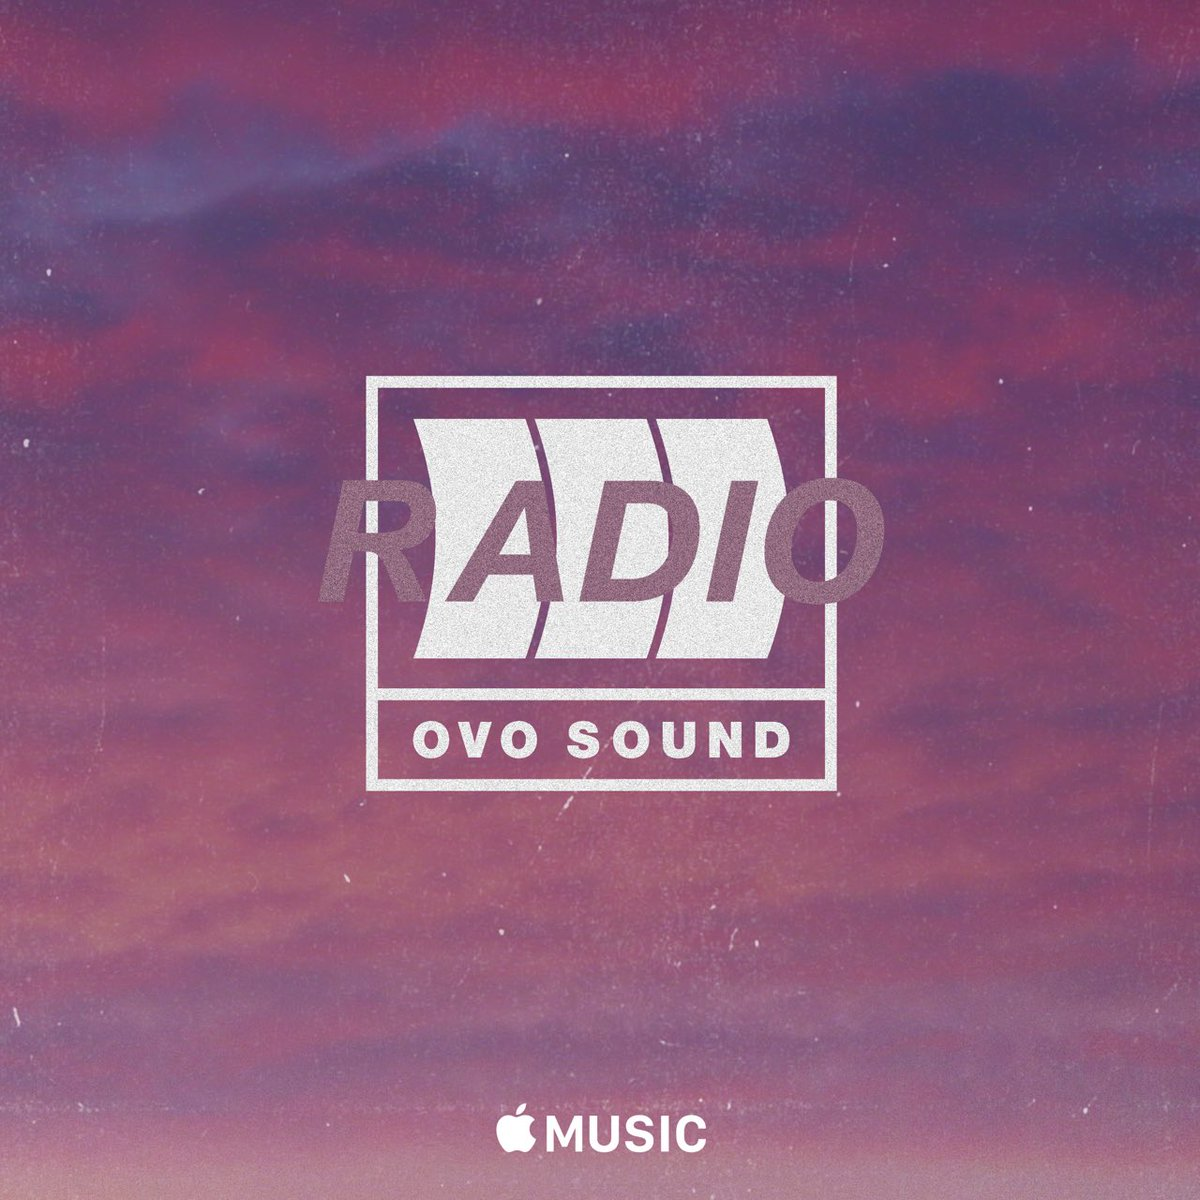 .@dvsndvsn dropped a remix of @justinbieber &amp; @bloodpop&#39;s #Friends on #OVOSOUNDRADIO. Listen now   https:// s.bkstg.com/5B9vvkQ  &nbsp;  <br>http://pic.twitter.com/2WQRdU11sm